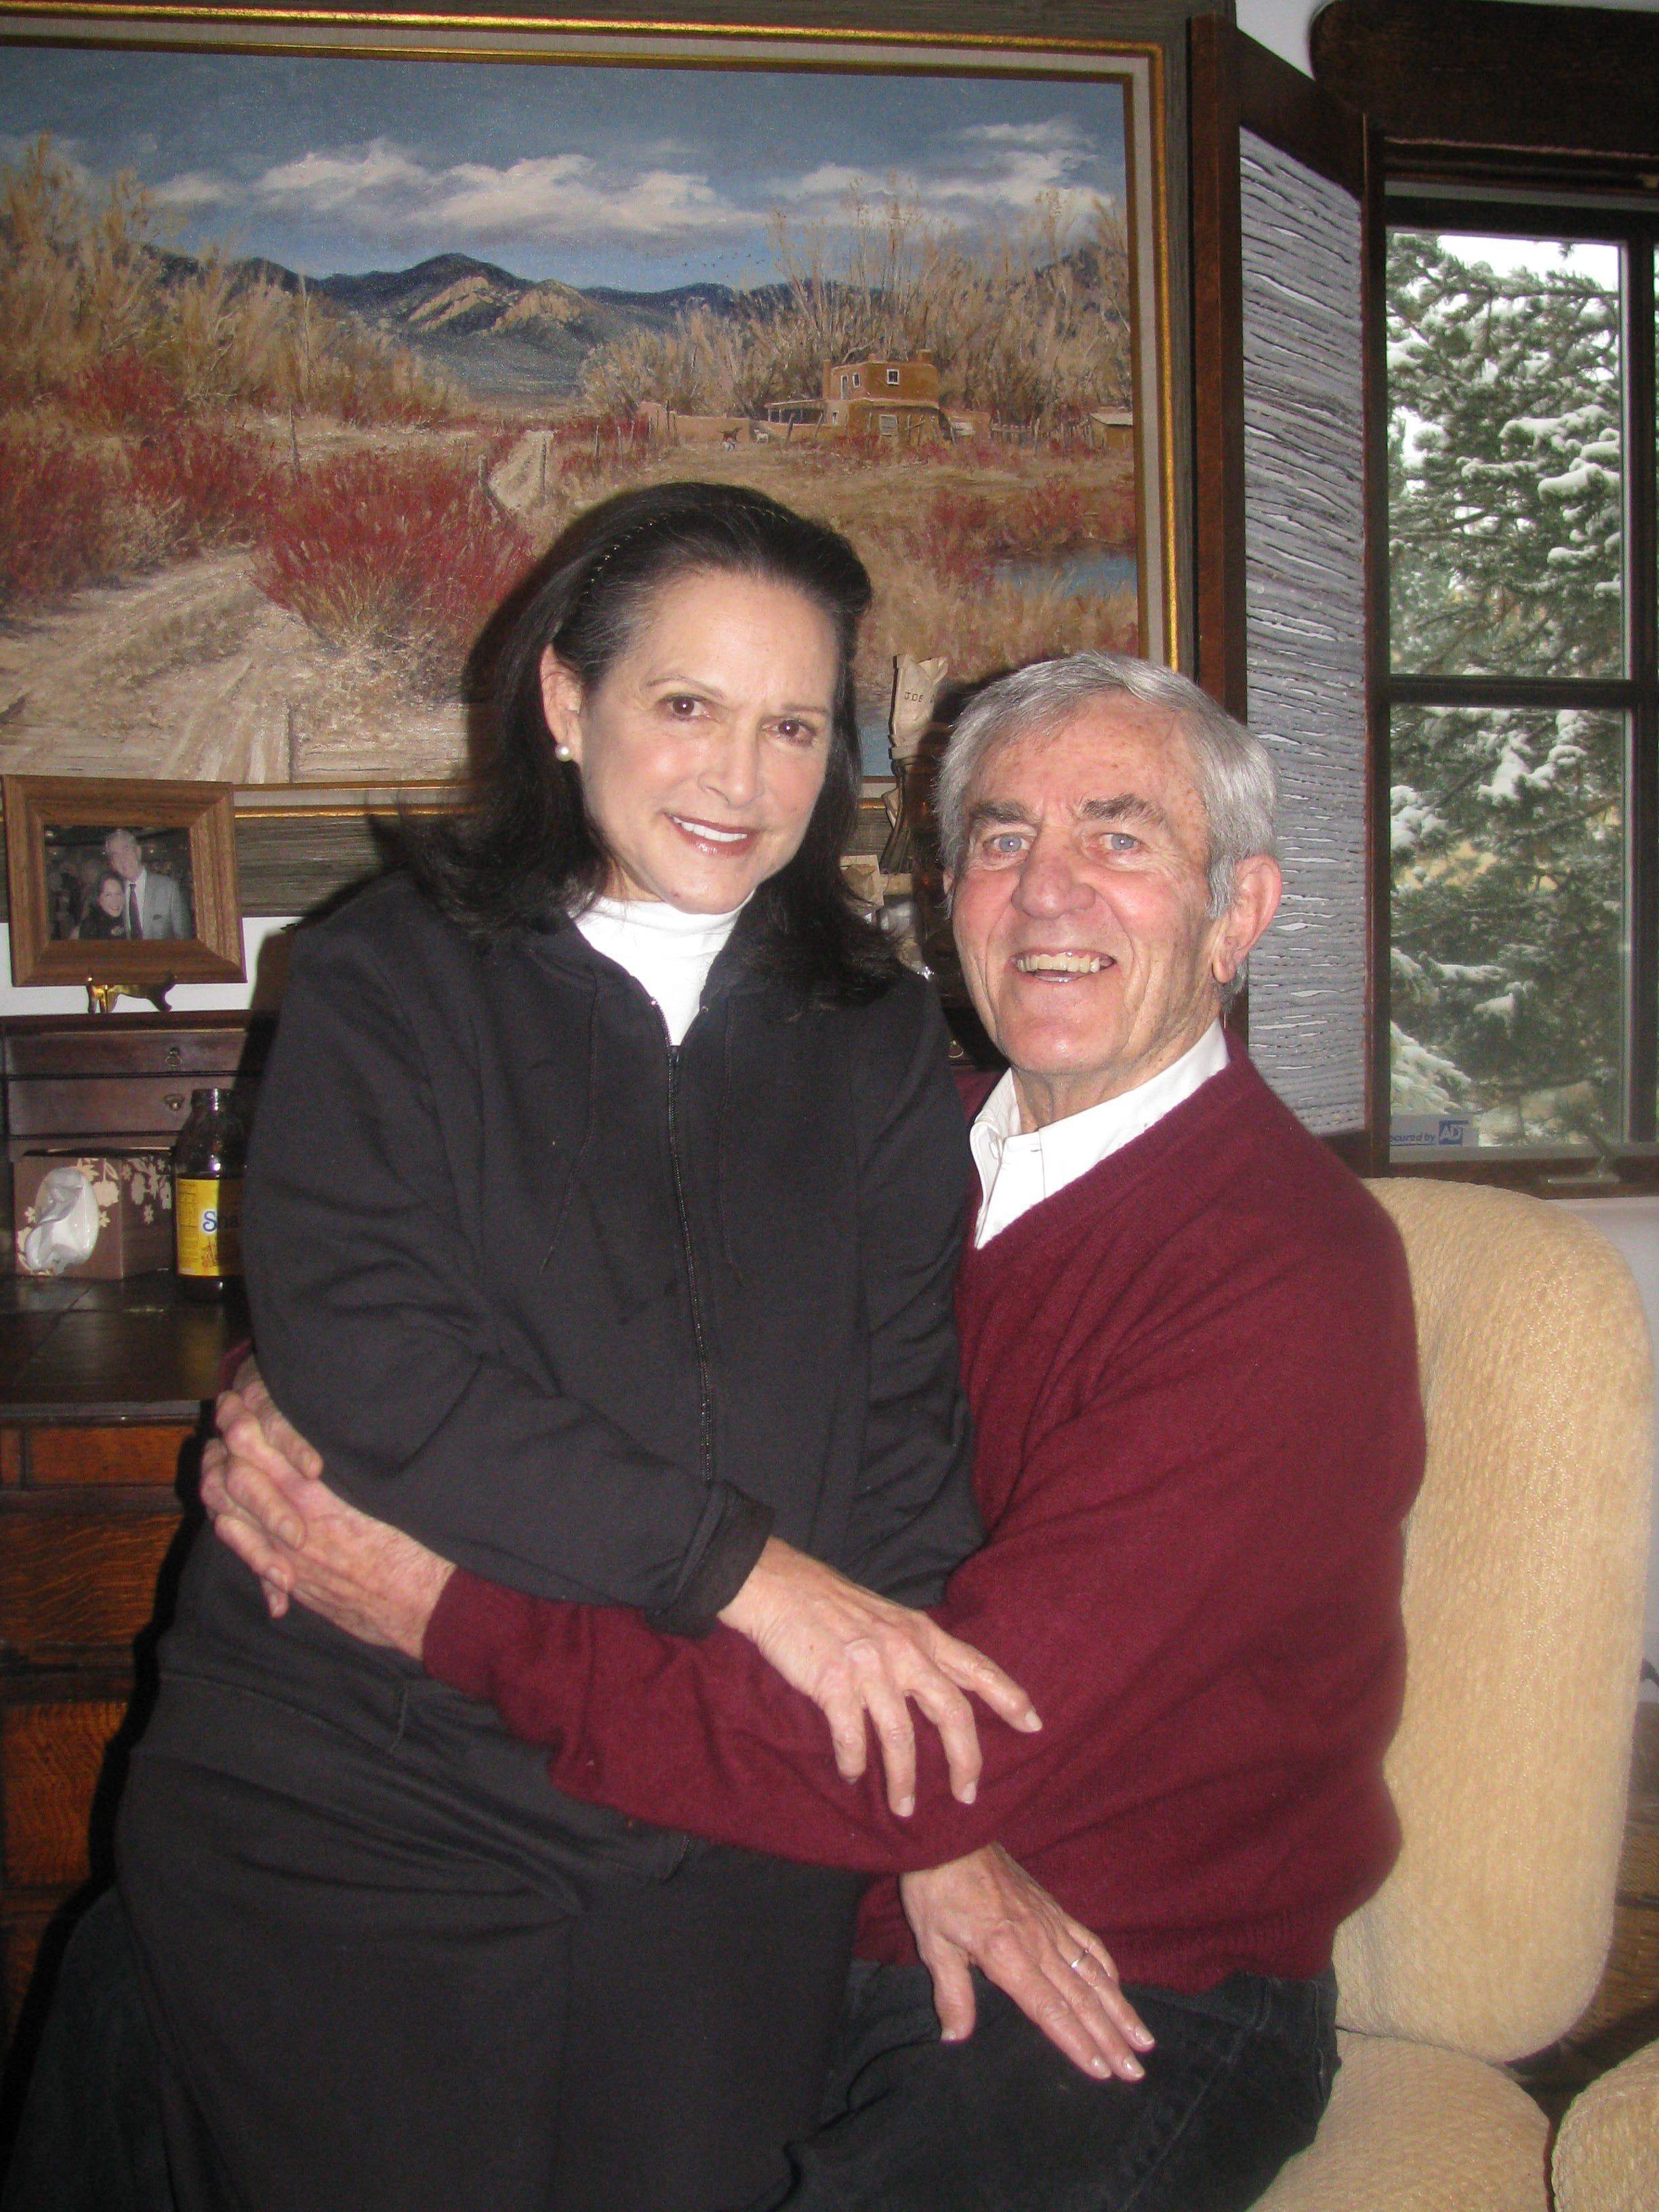 This photo made Oct. 28, 2009, shows Don Meredith and his wife, Susan, in Santa Fe, N.M.